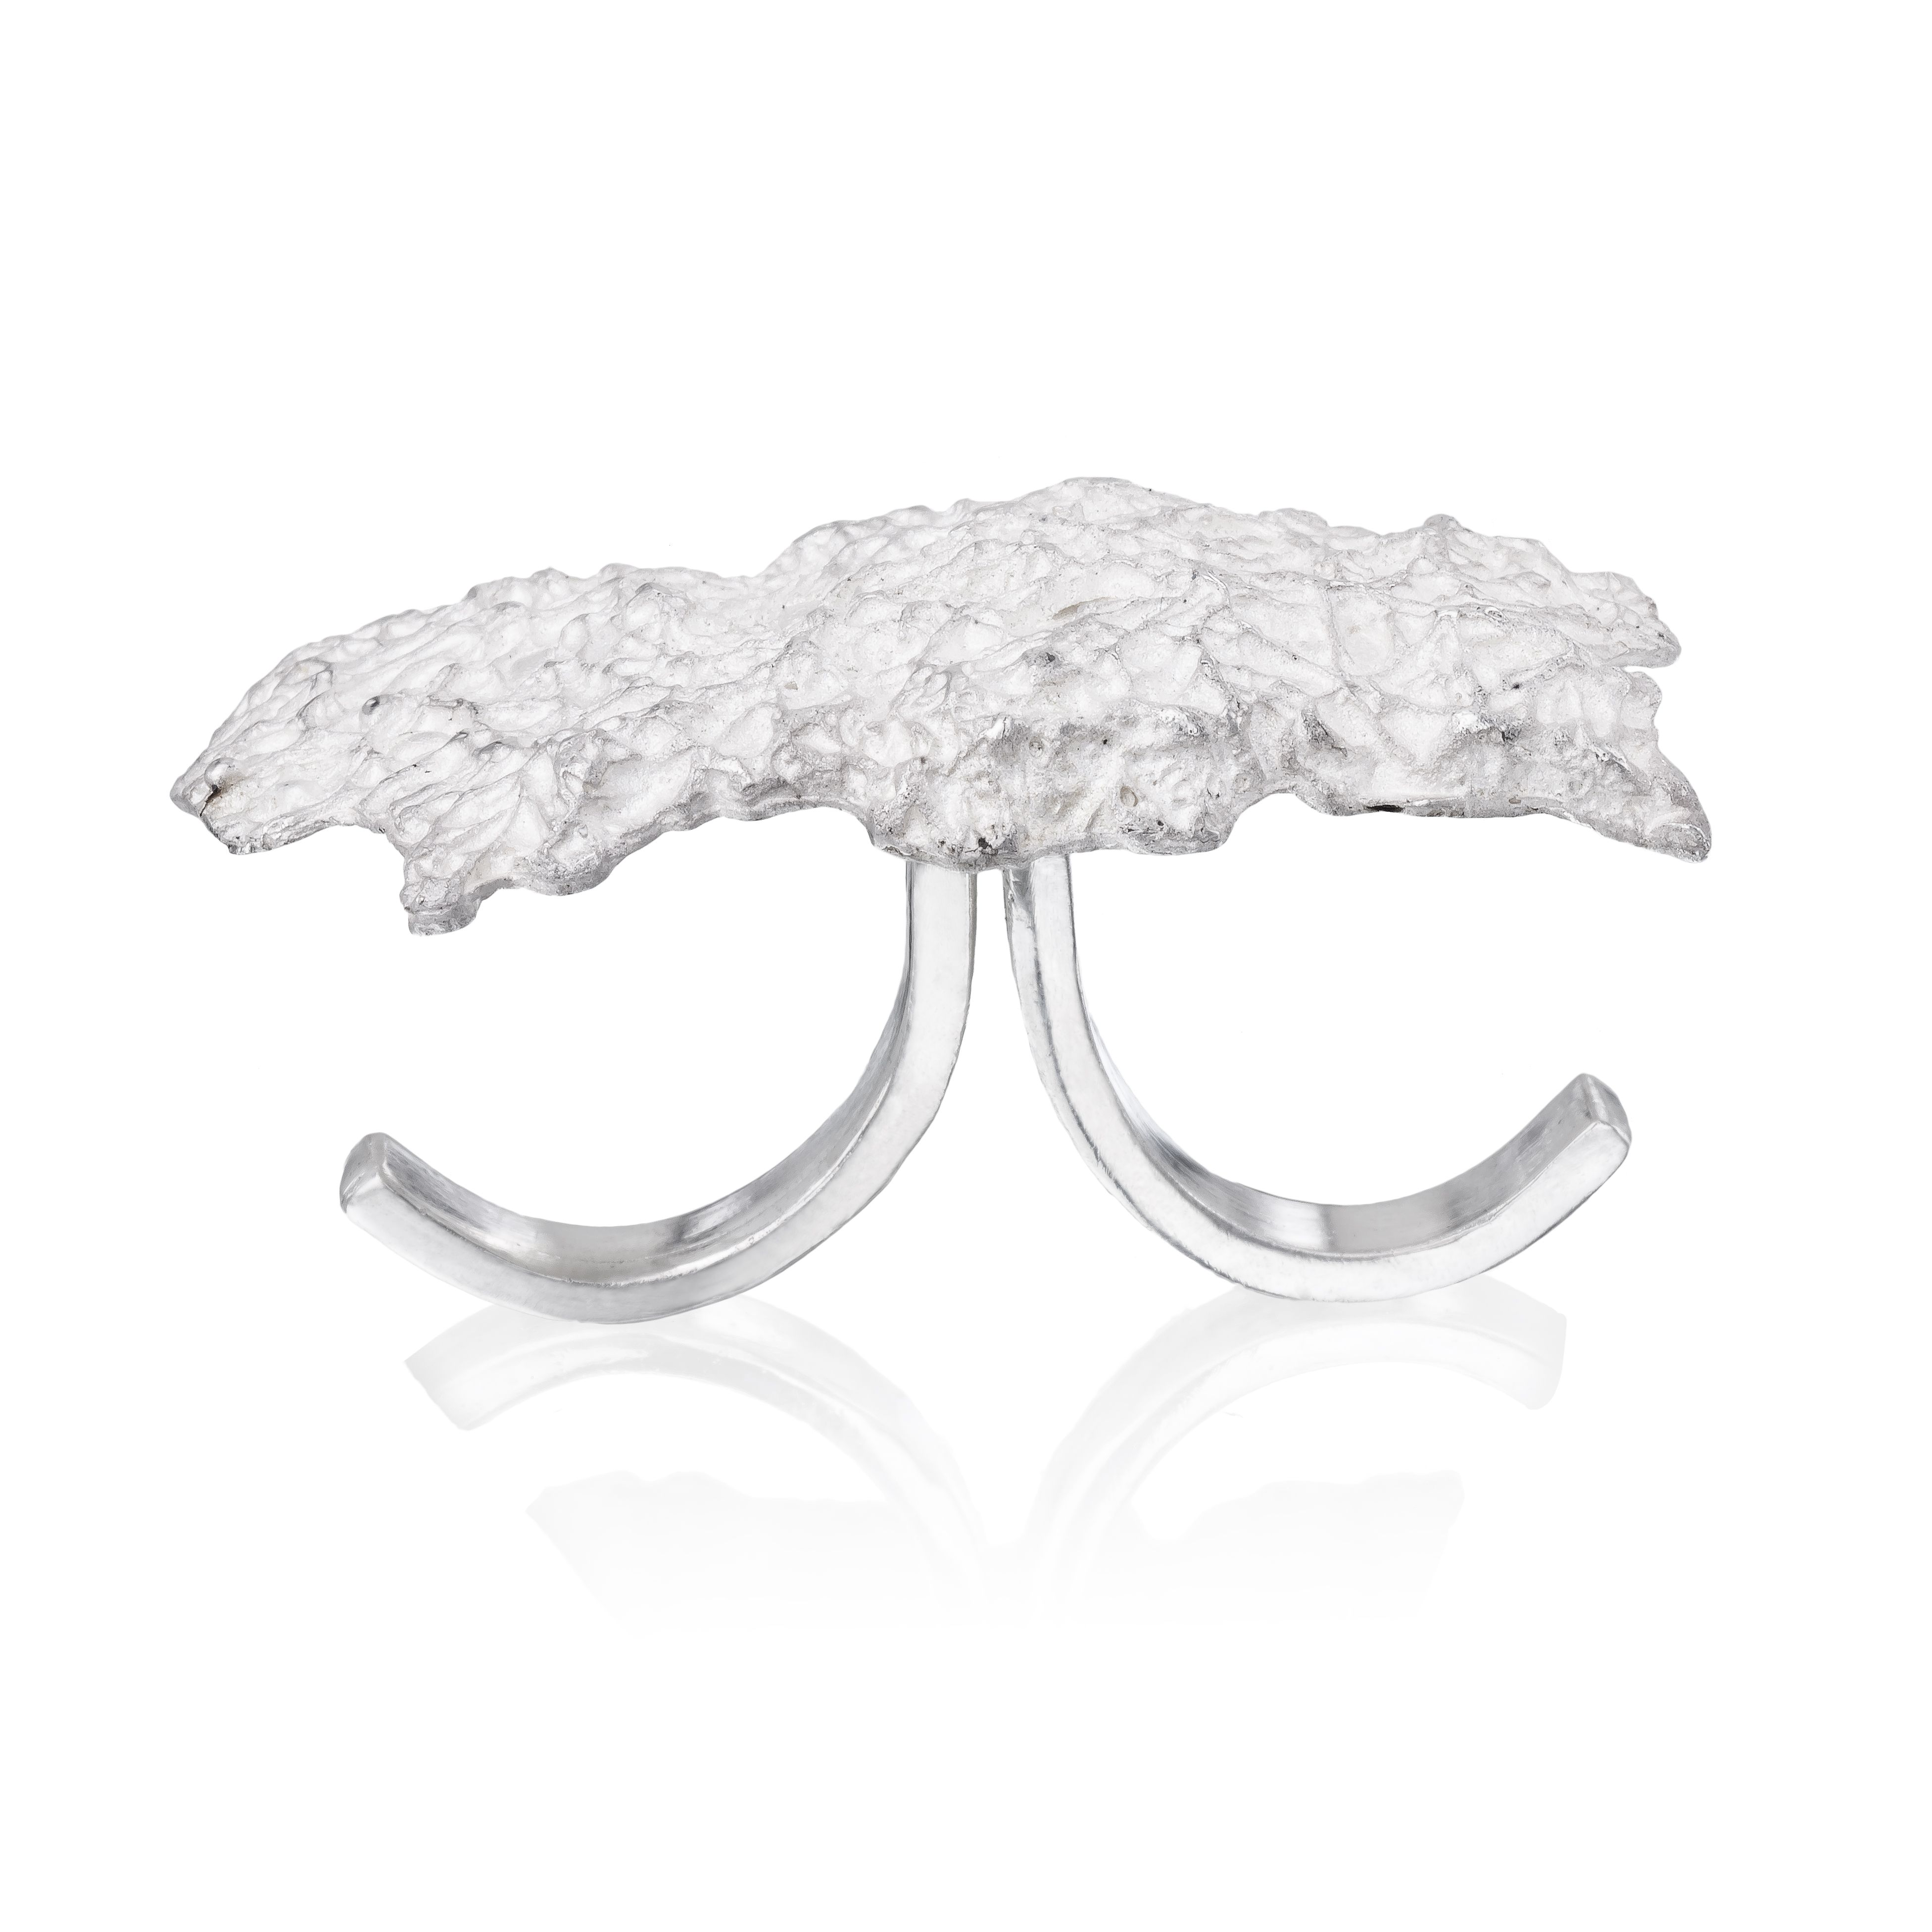 Big Cloud Ring by Maya Sebbah | Jewelry Artist. Texture Ring. Two Finger Ring, Double Ring. Statement Ring.